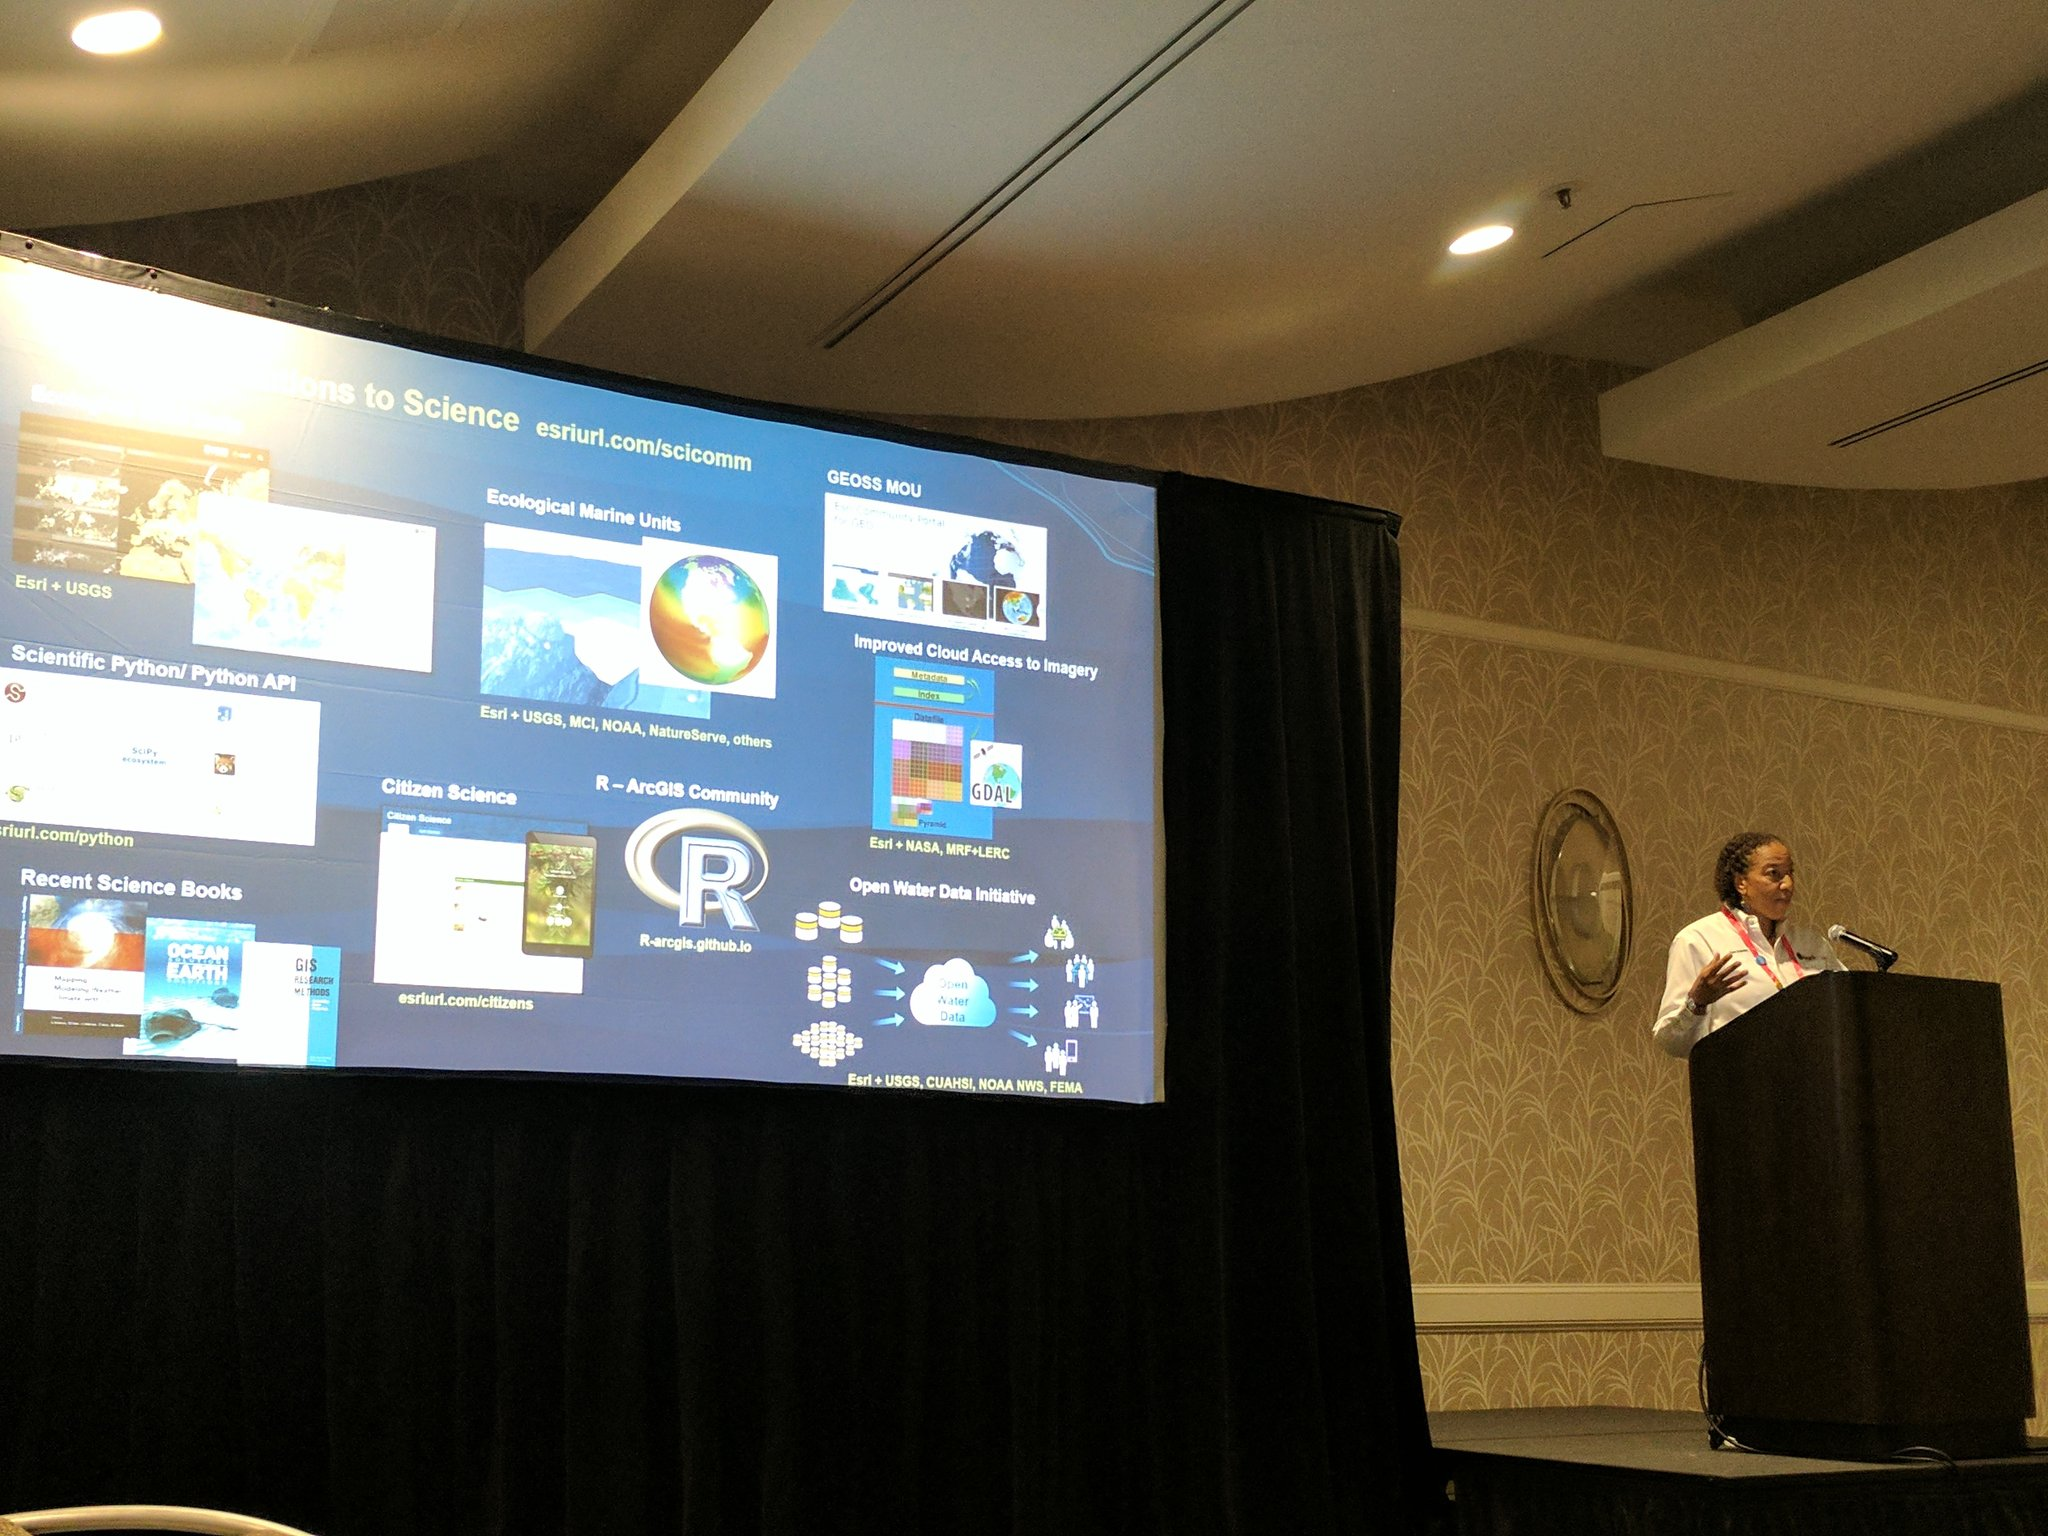 """""""it's not against the rules to say 'open source'"""" @deepseadawn addressing #EsriUC Student Assistants 💯💯💯 https://t.co/ip4zlCqoWY"""